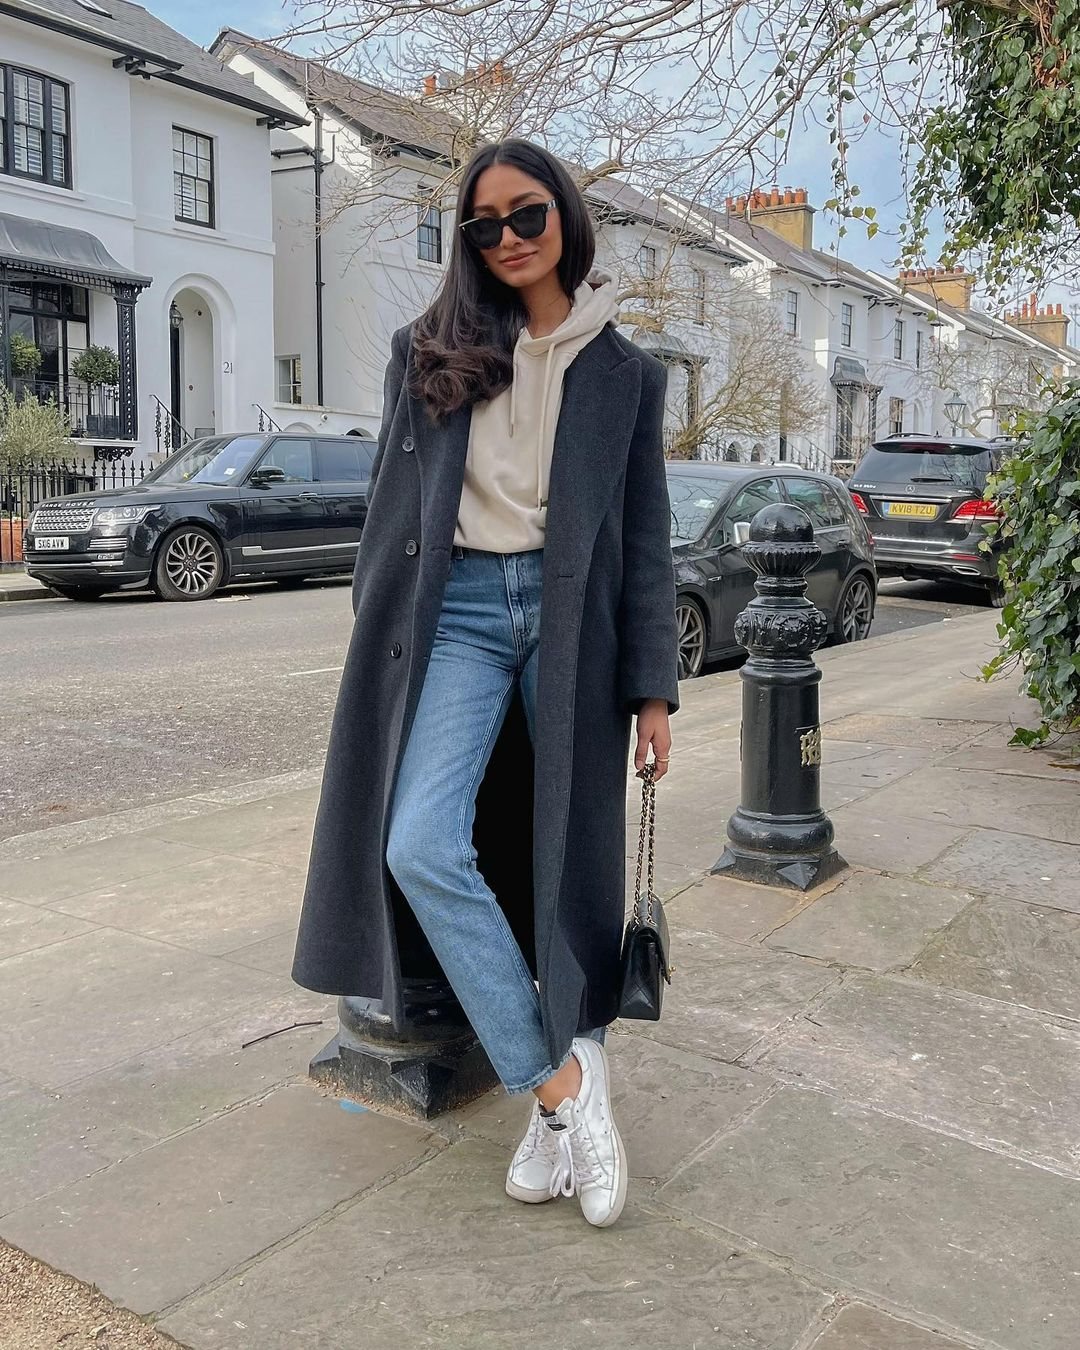 Hood and trench coat style for combinations with mom jeans